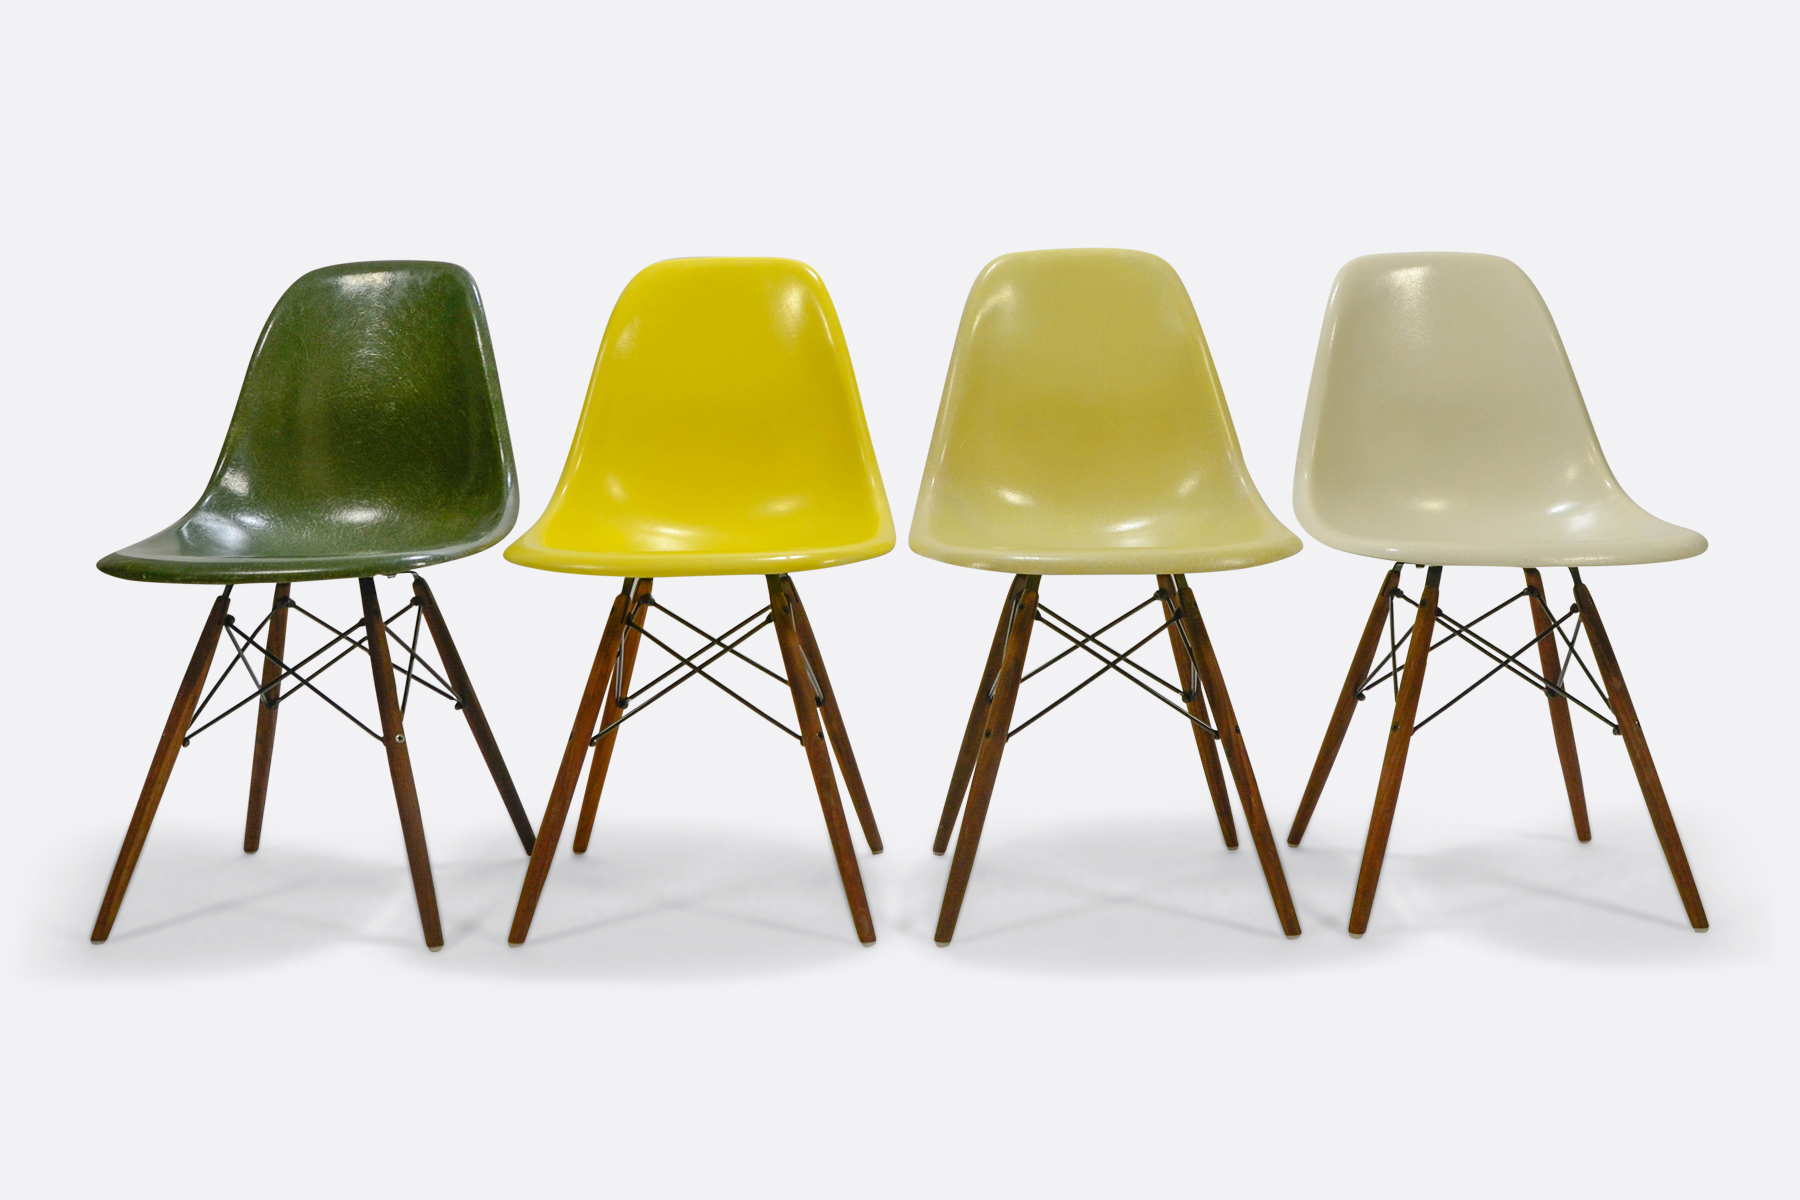 Eames DSW set of 4 Forest Green - Canary Yellow - Lemon Yellow - Off White1